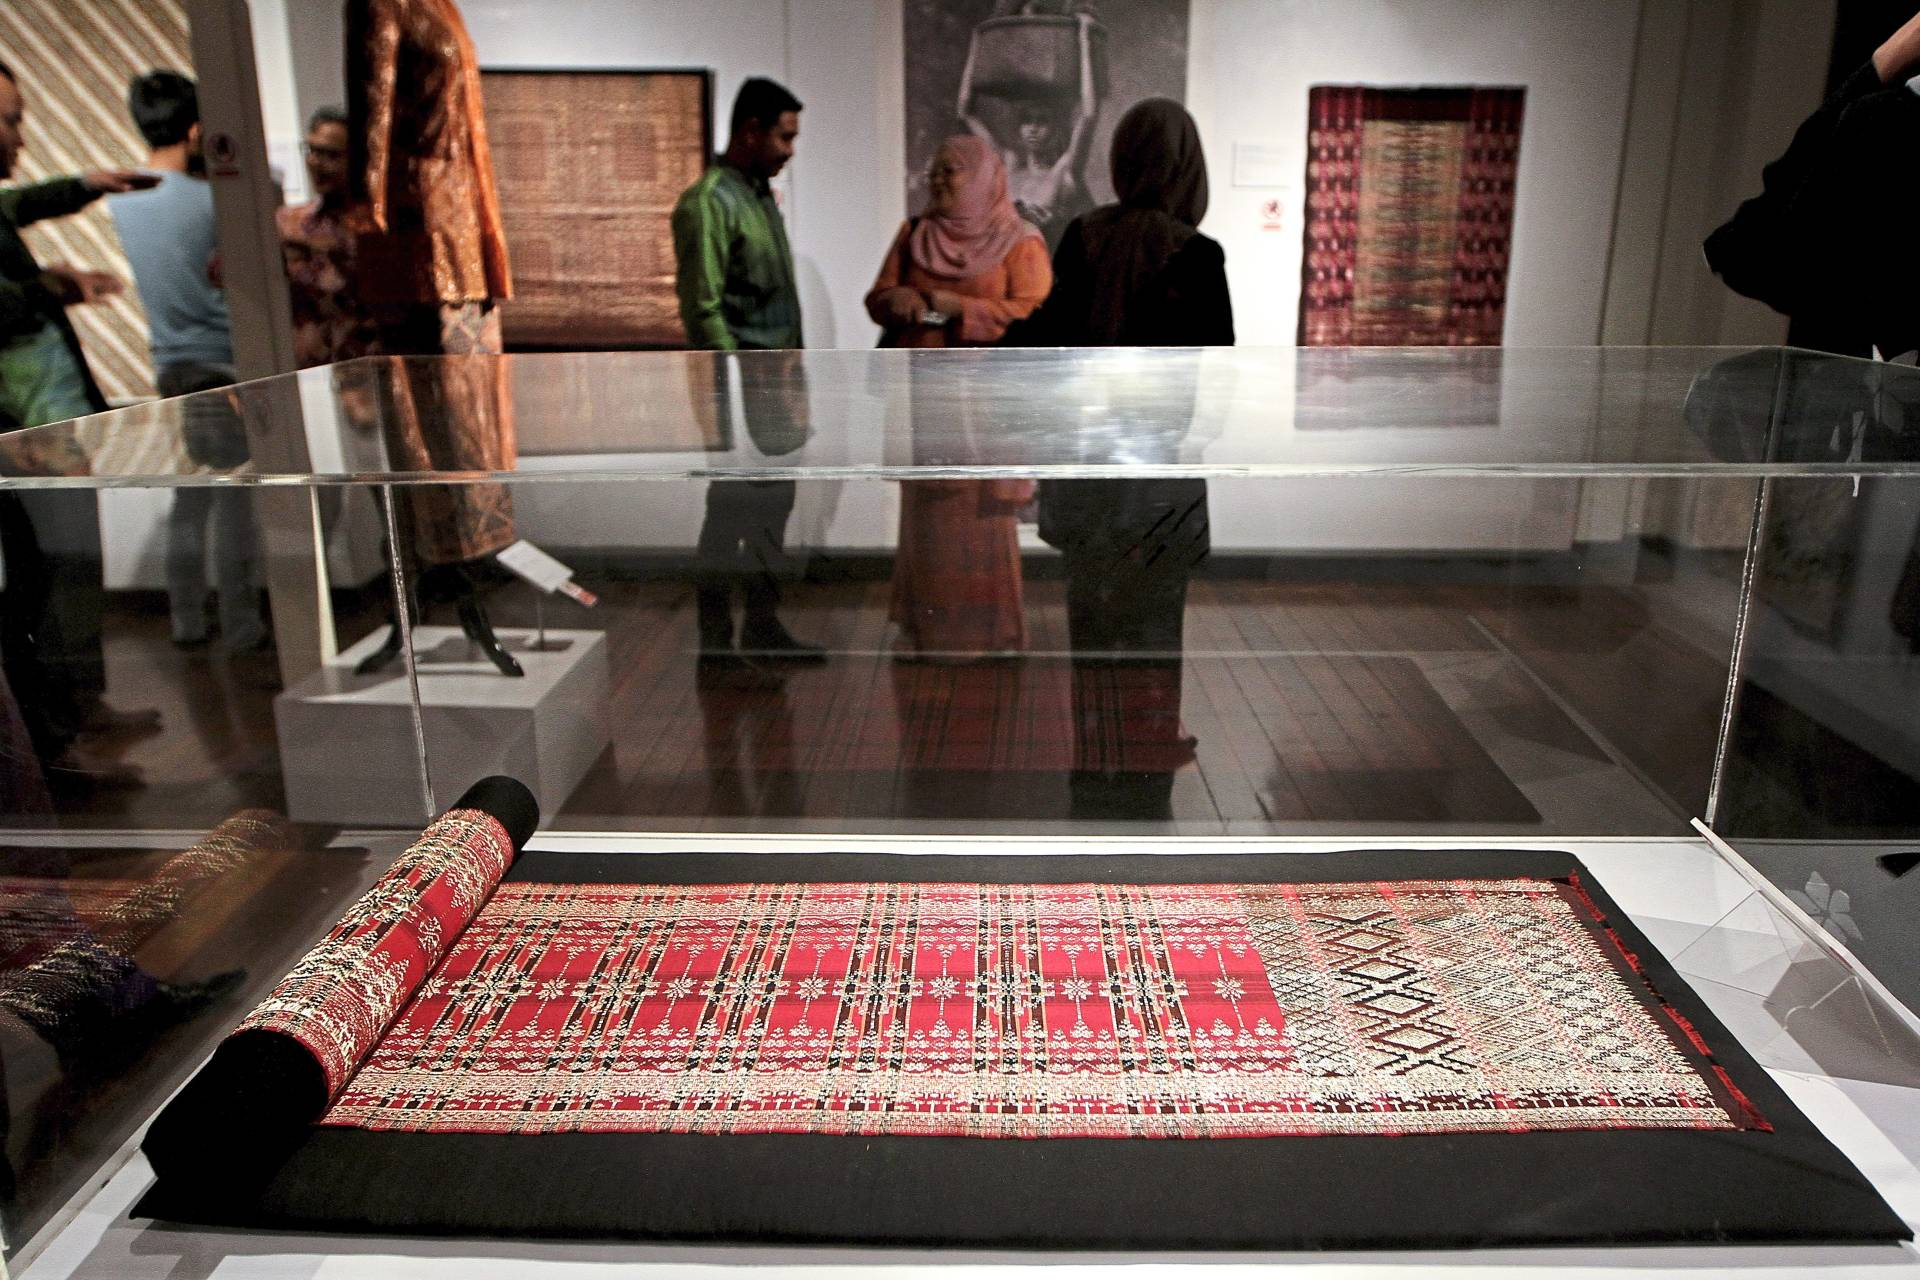 A wide range of exhibits featured in the 'Sulaiman Ghani: Malaysian Textile Art Activist Exhibition' at the National Textile Museum, Kuala Lumpur. Photo: The Star/Yap Chee Hong